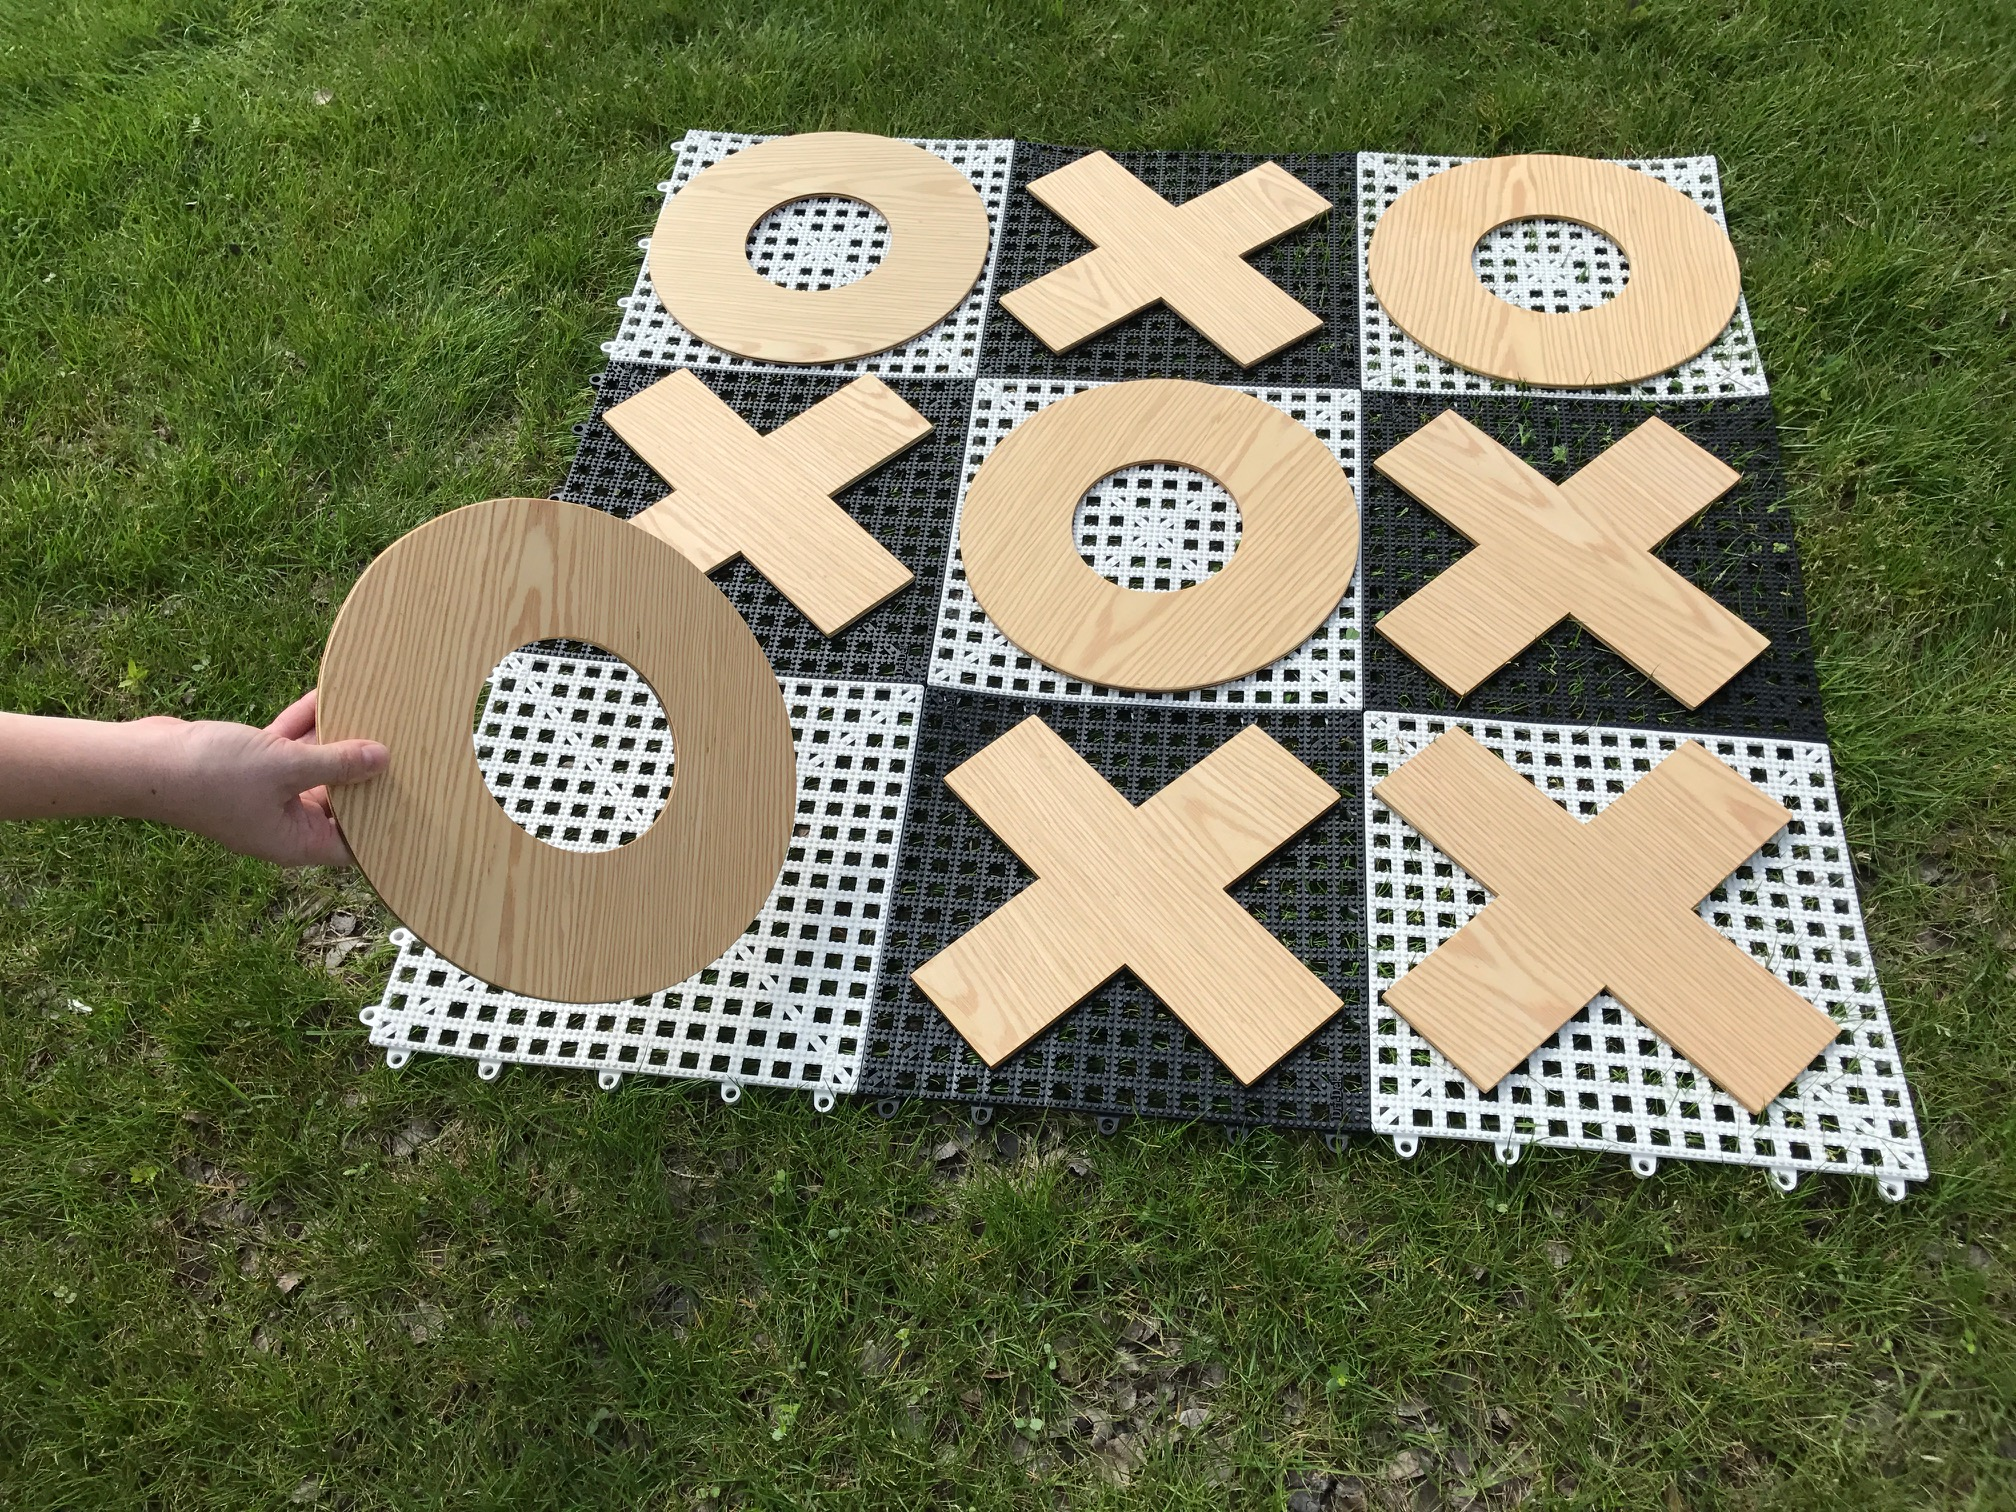 Giant Tic Tac Toe Game Rental Dallas Tx